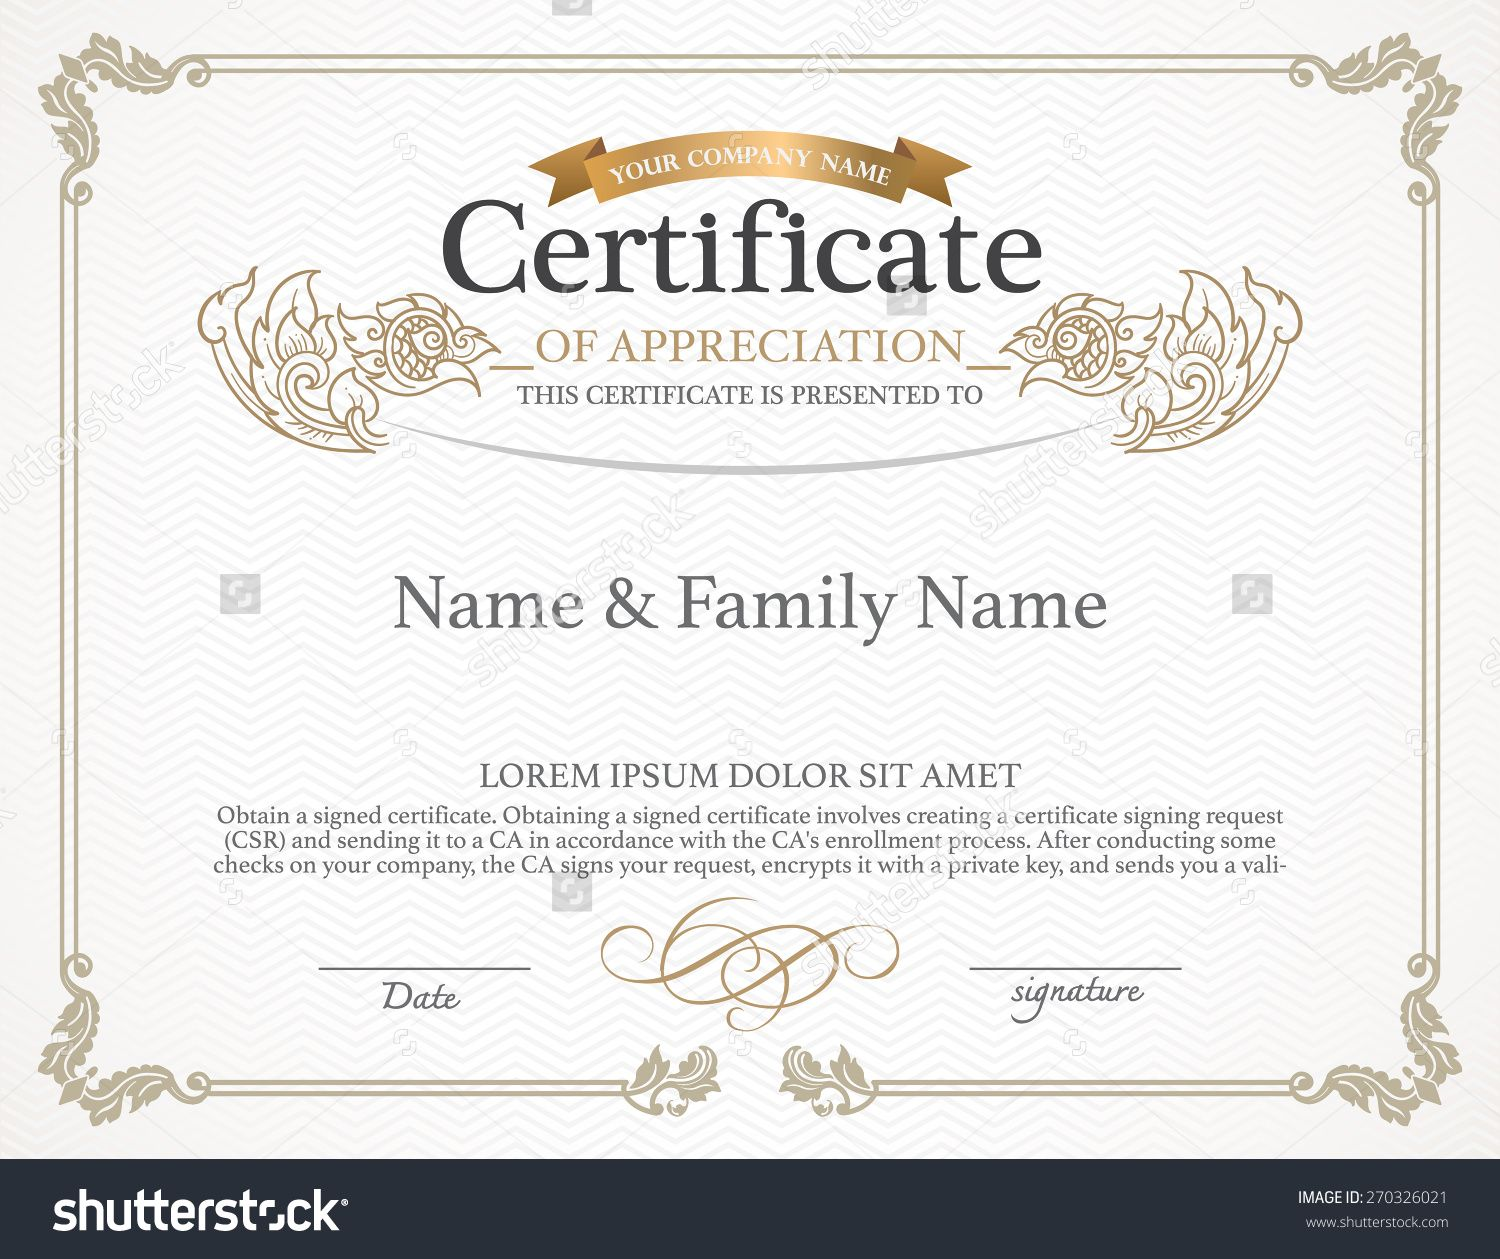 banner royalty free stock Certificate Design Template